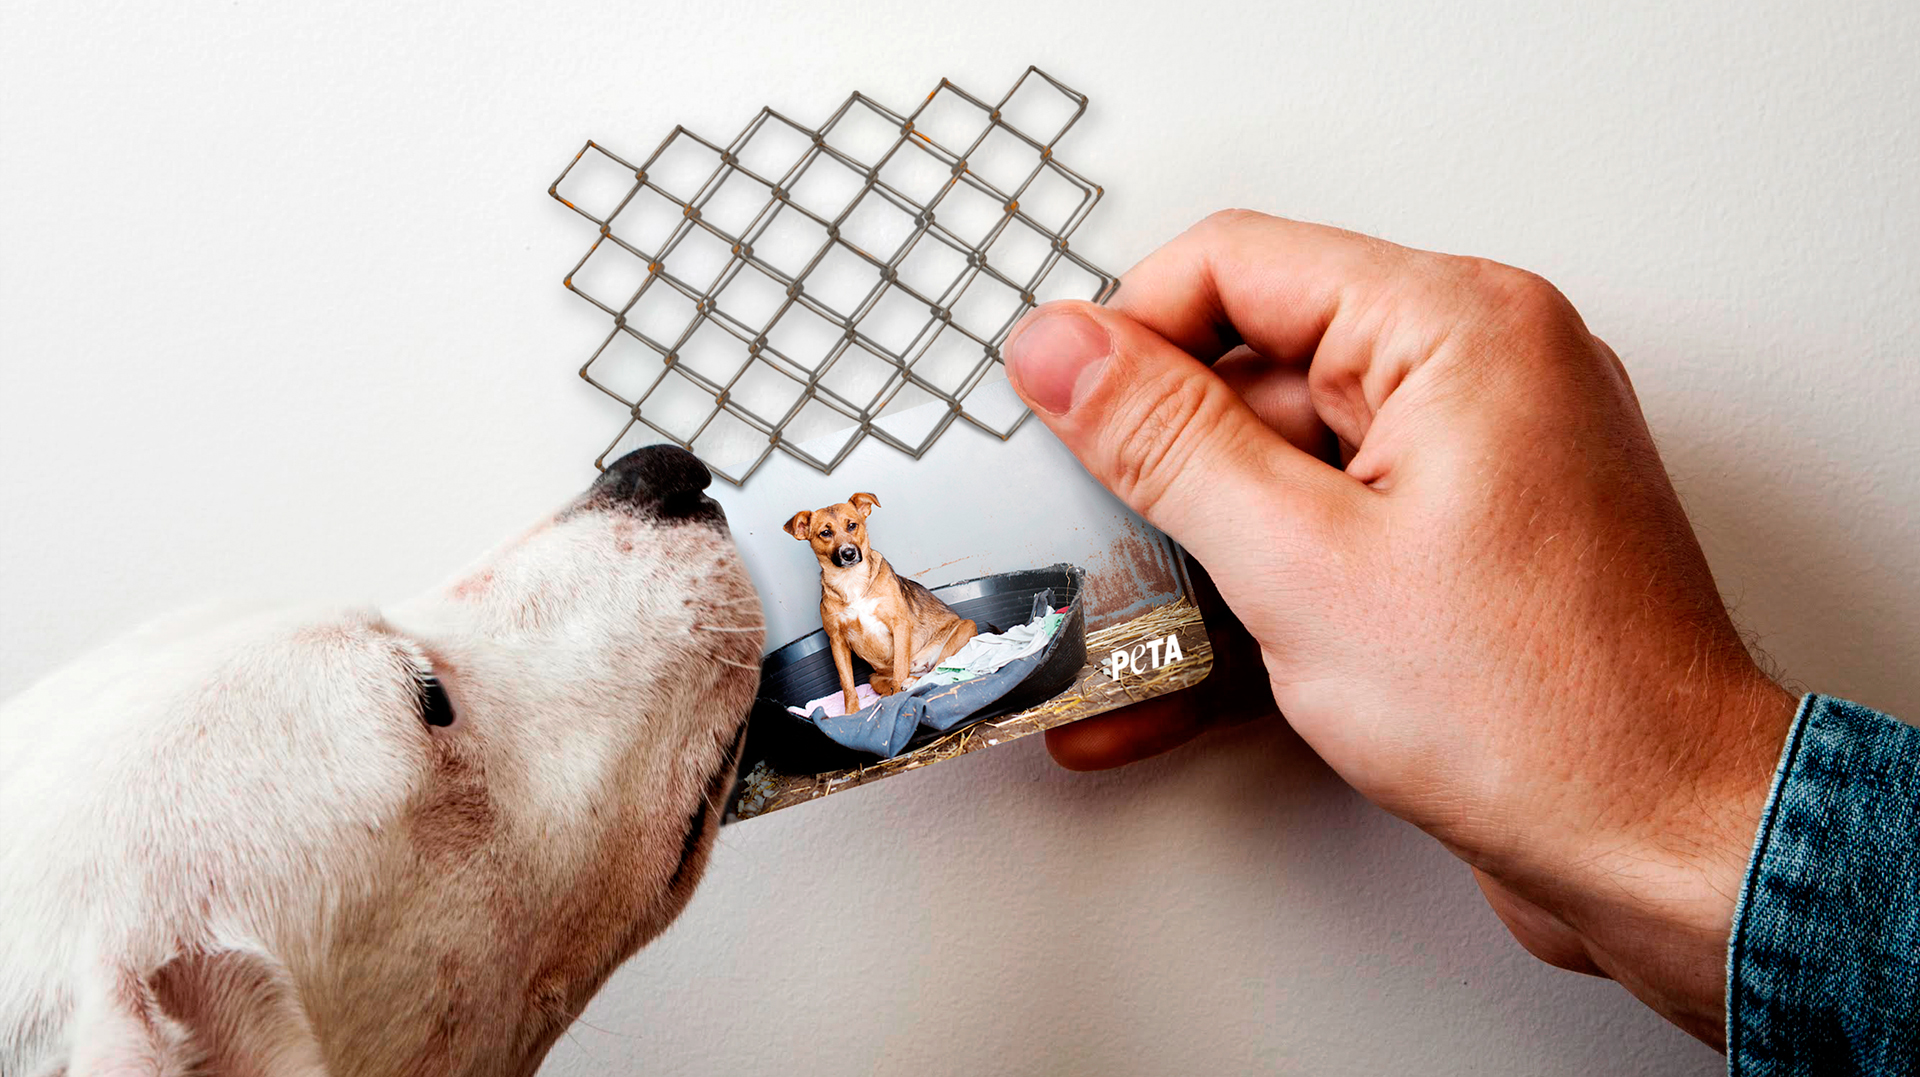 PETA: PETA Business Cards - Adeevee